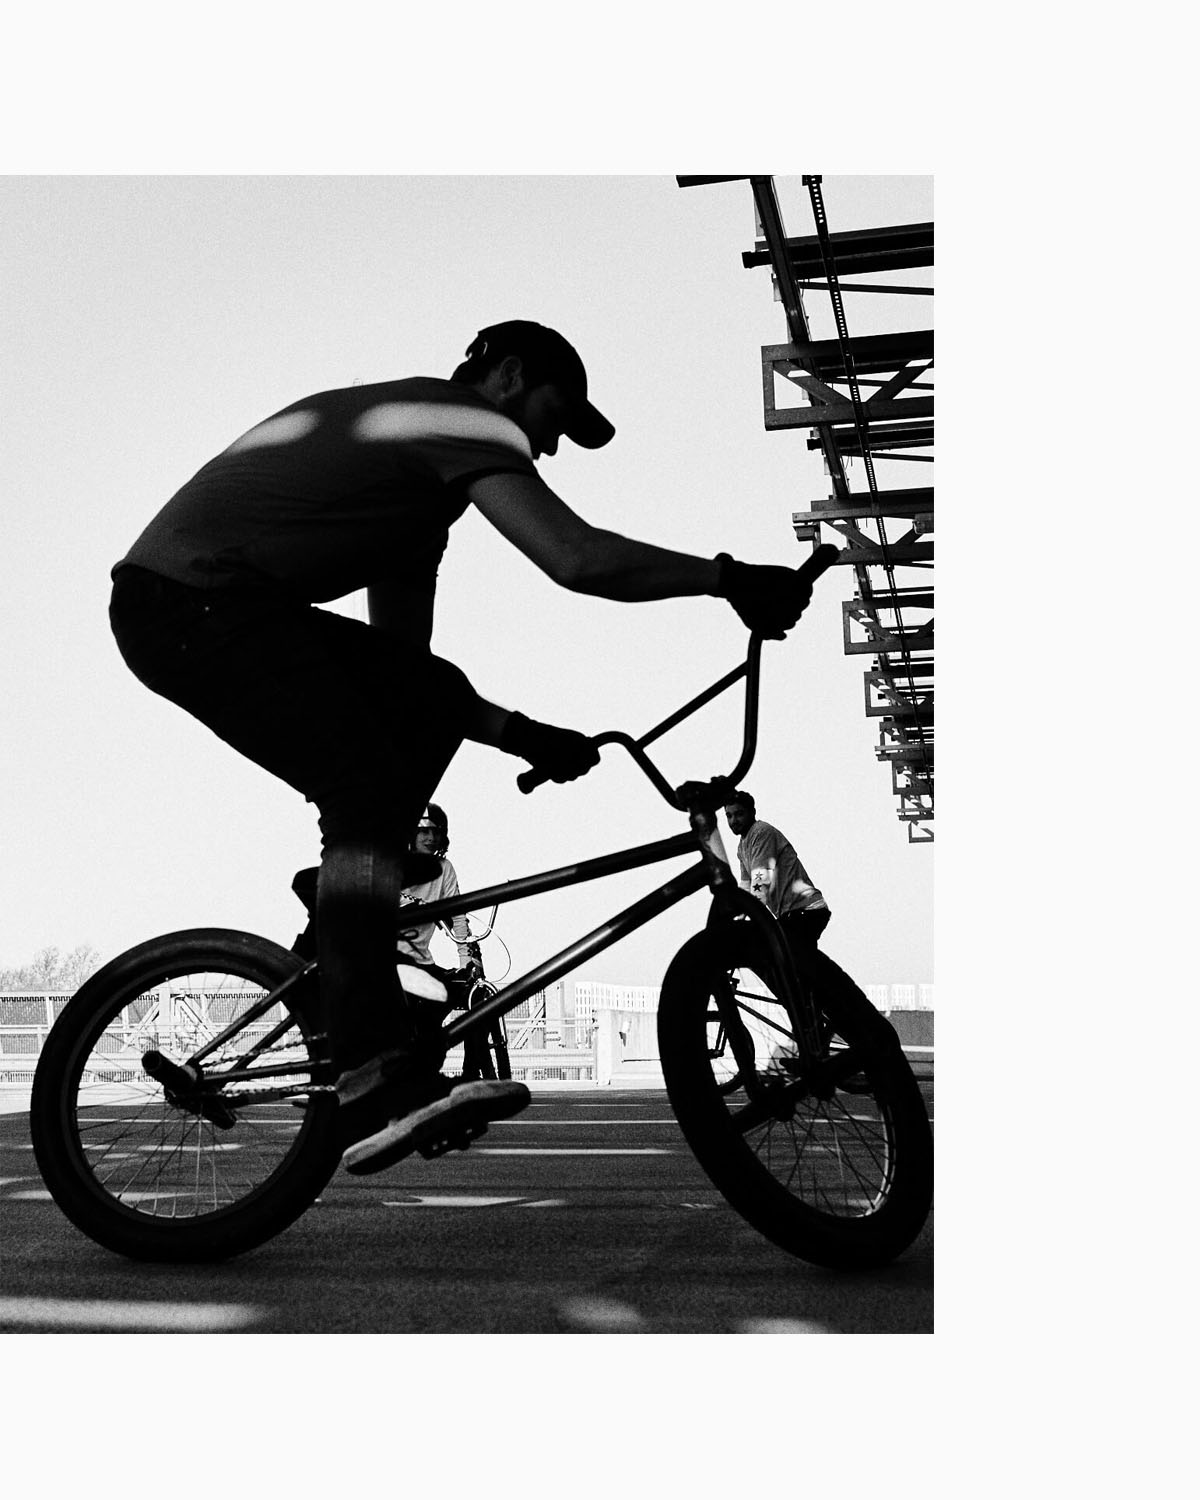 lad silhouette,  bike by lifestyle photographer Tim Cole